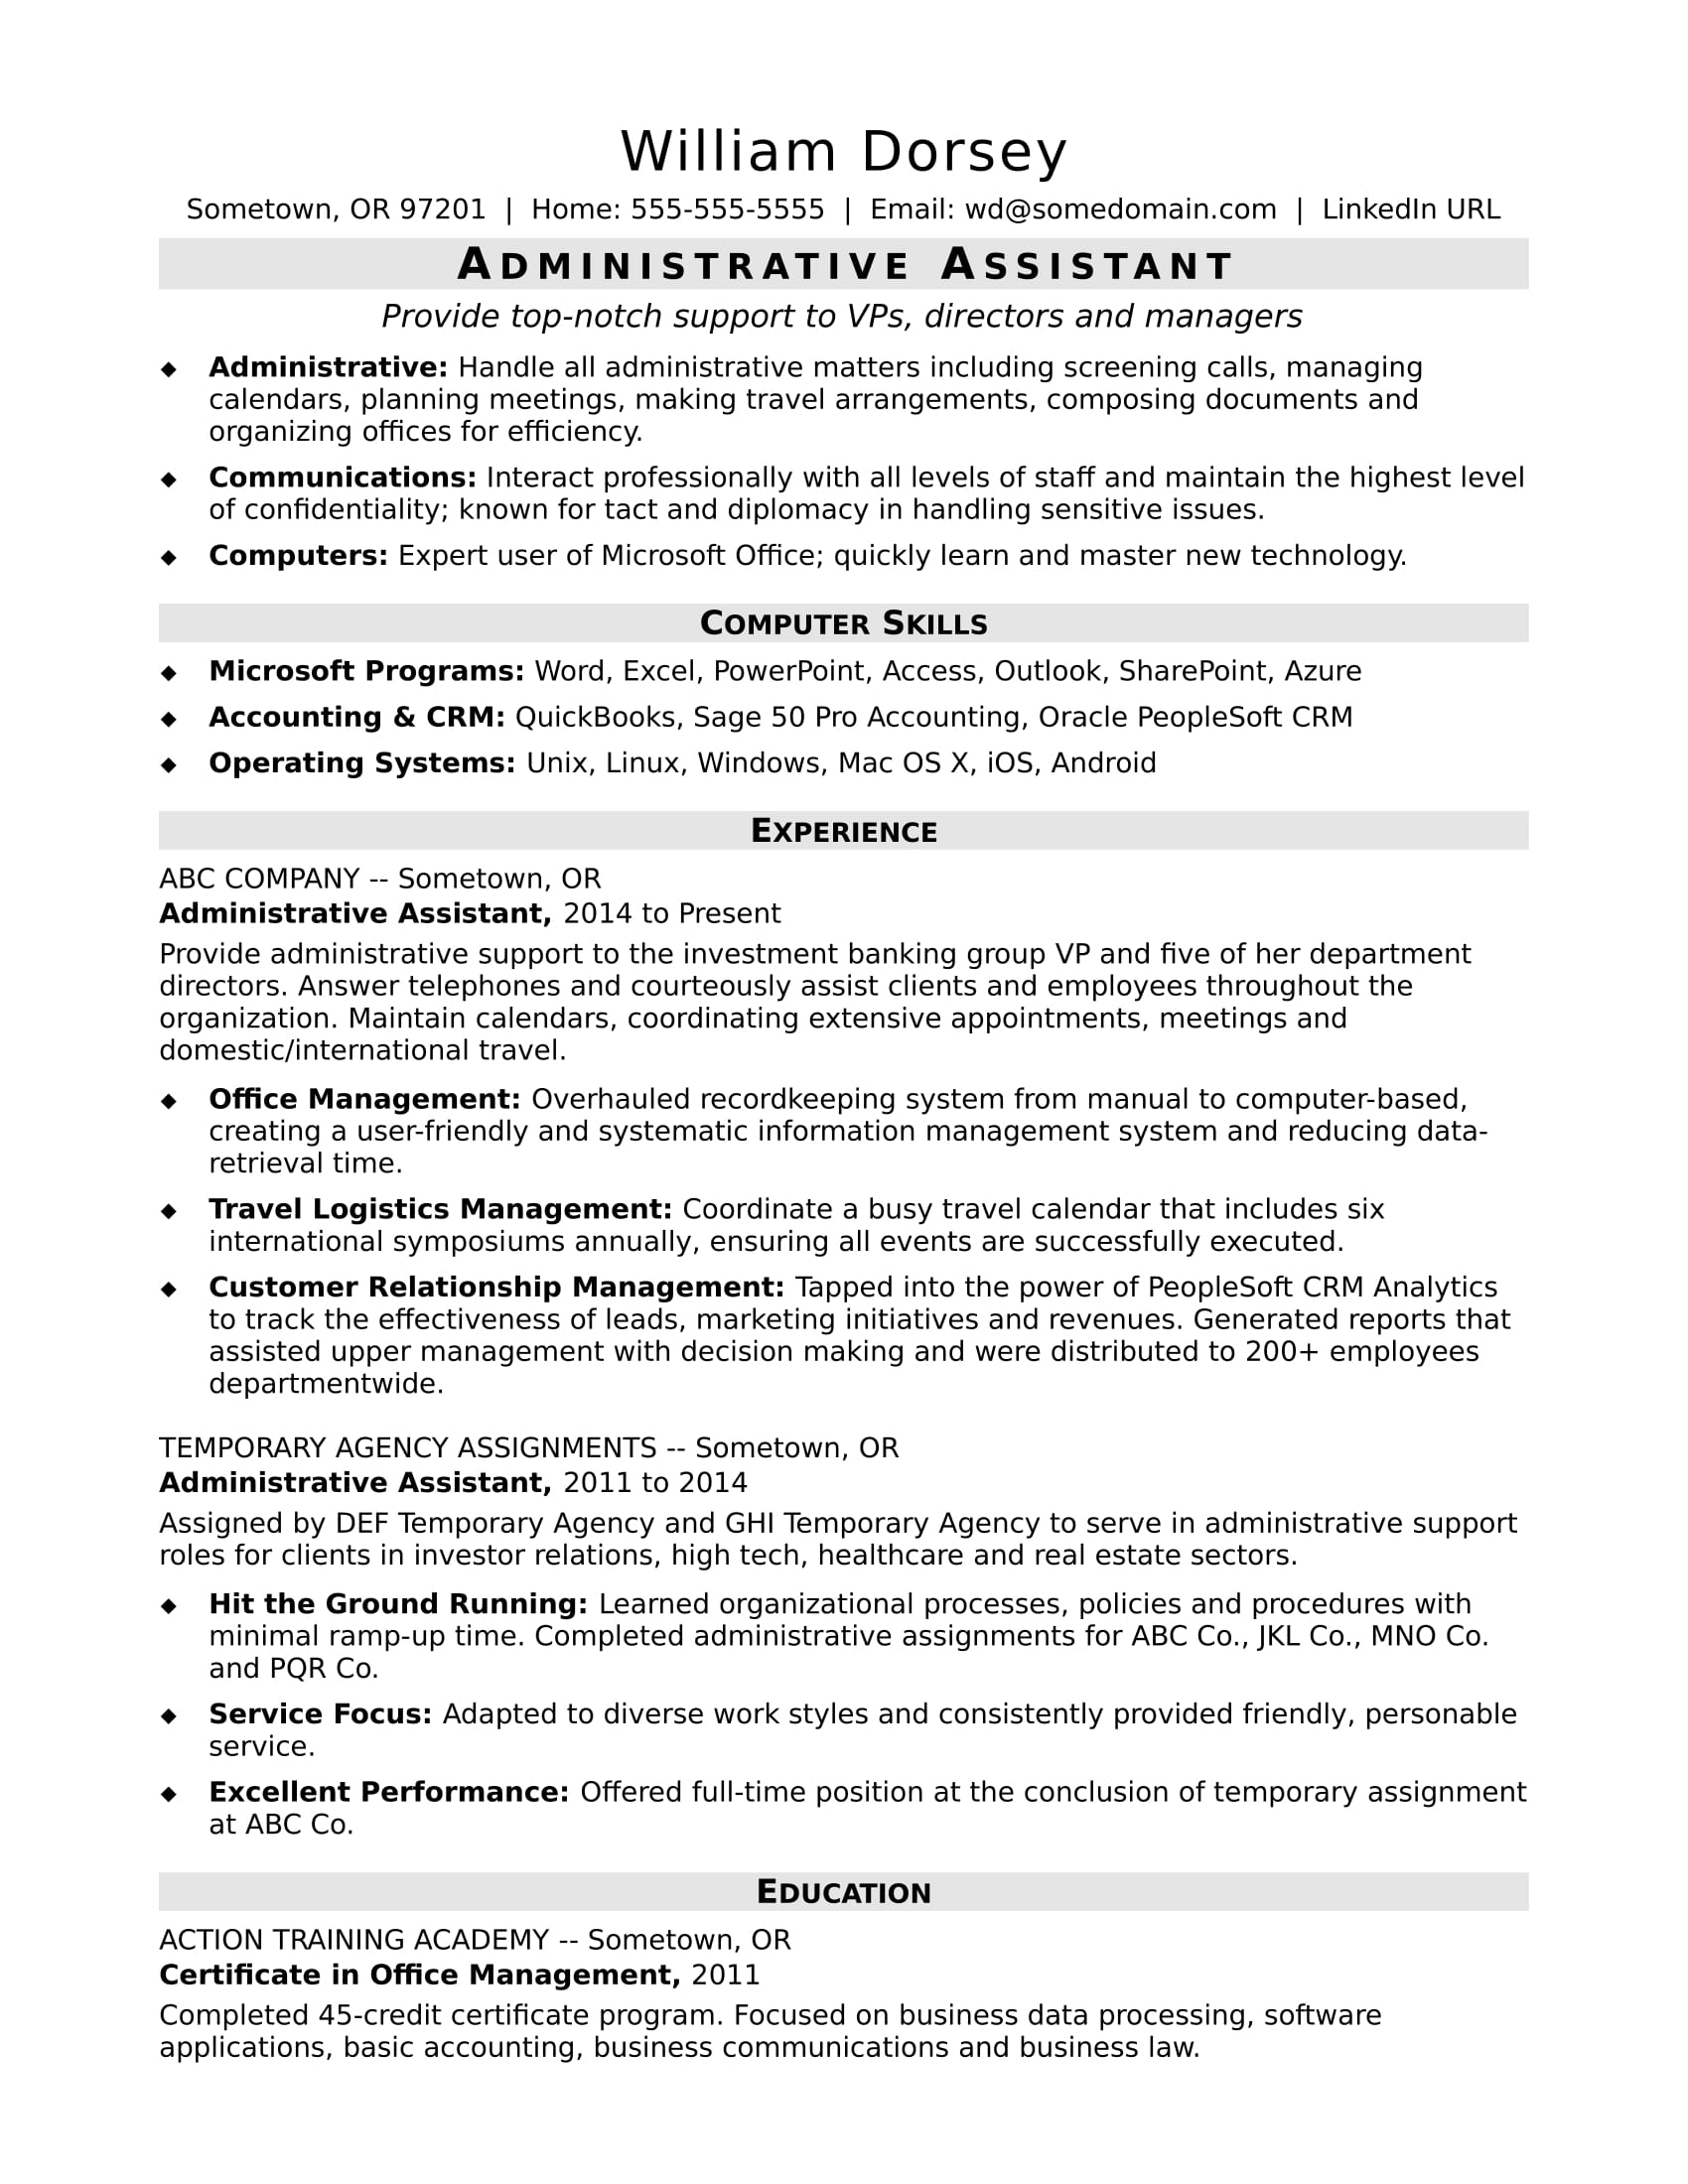 Beautiful Sample Resume For A Midlevel Administrative Assistant  Resume Example For Administrative Assistant